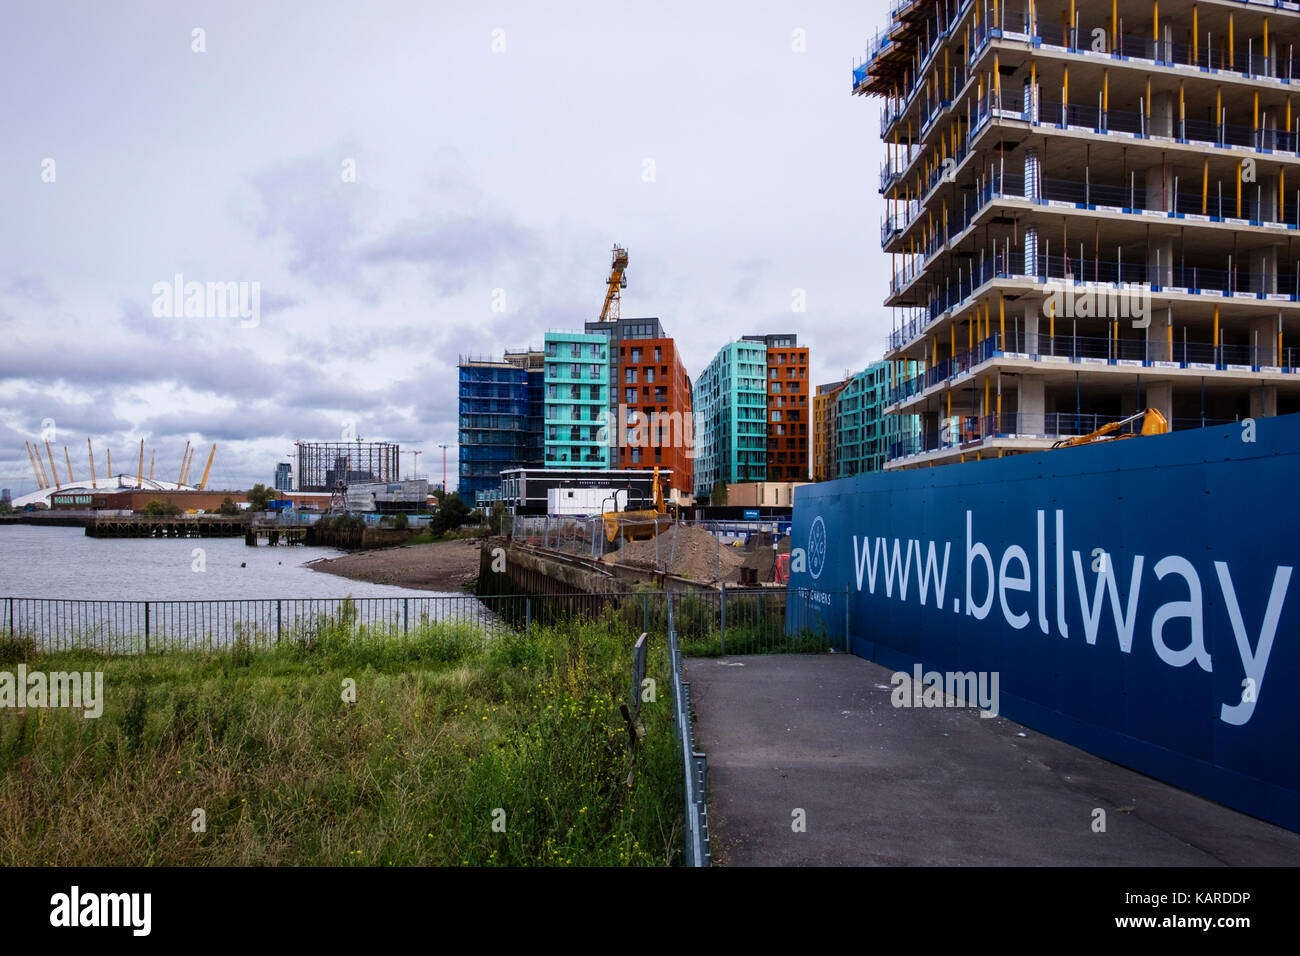 London,Greenwich. Luxury New-Build riverside apartment buildings under construction. Bellway and Barratts Developers - Stock Image